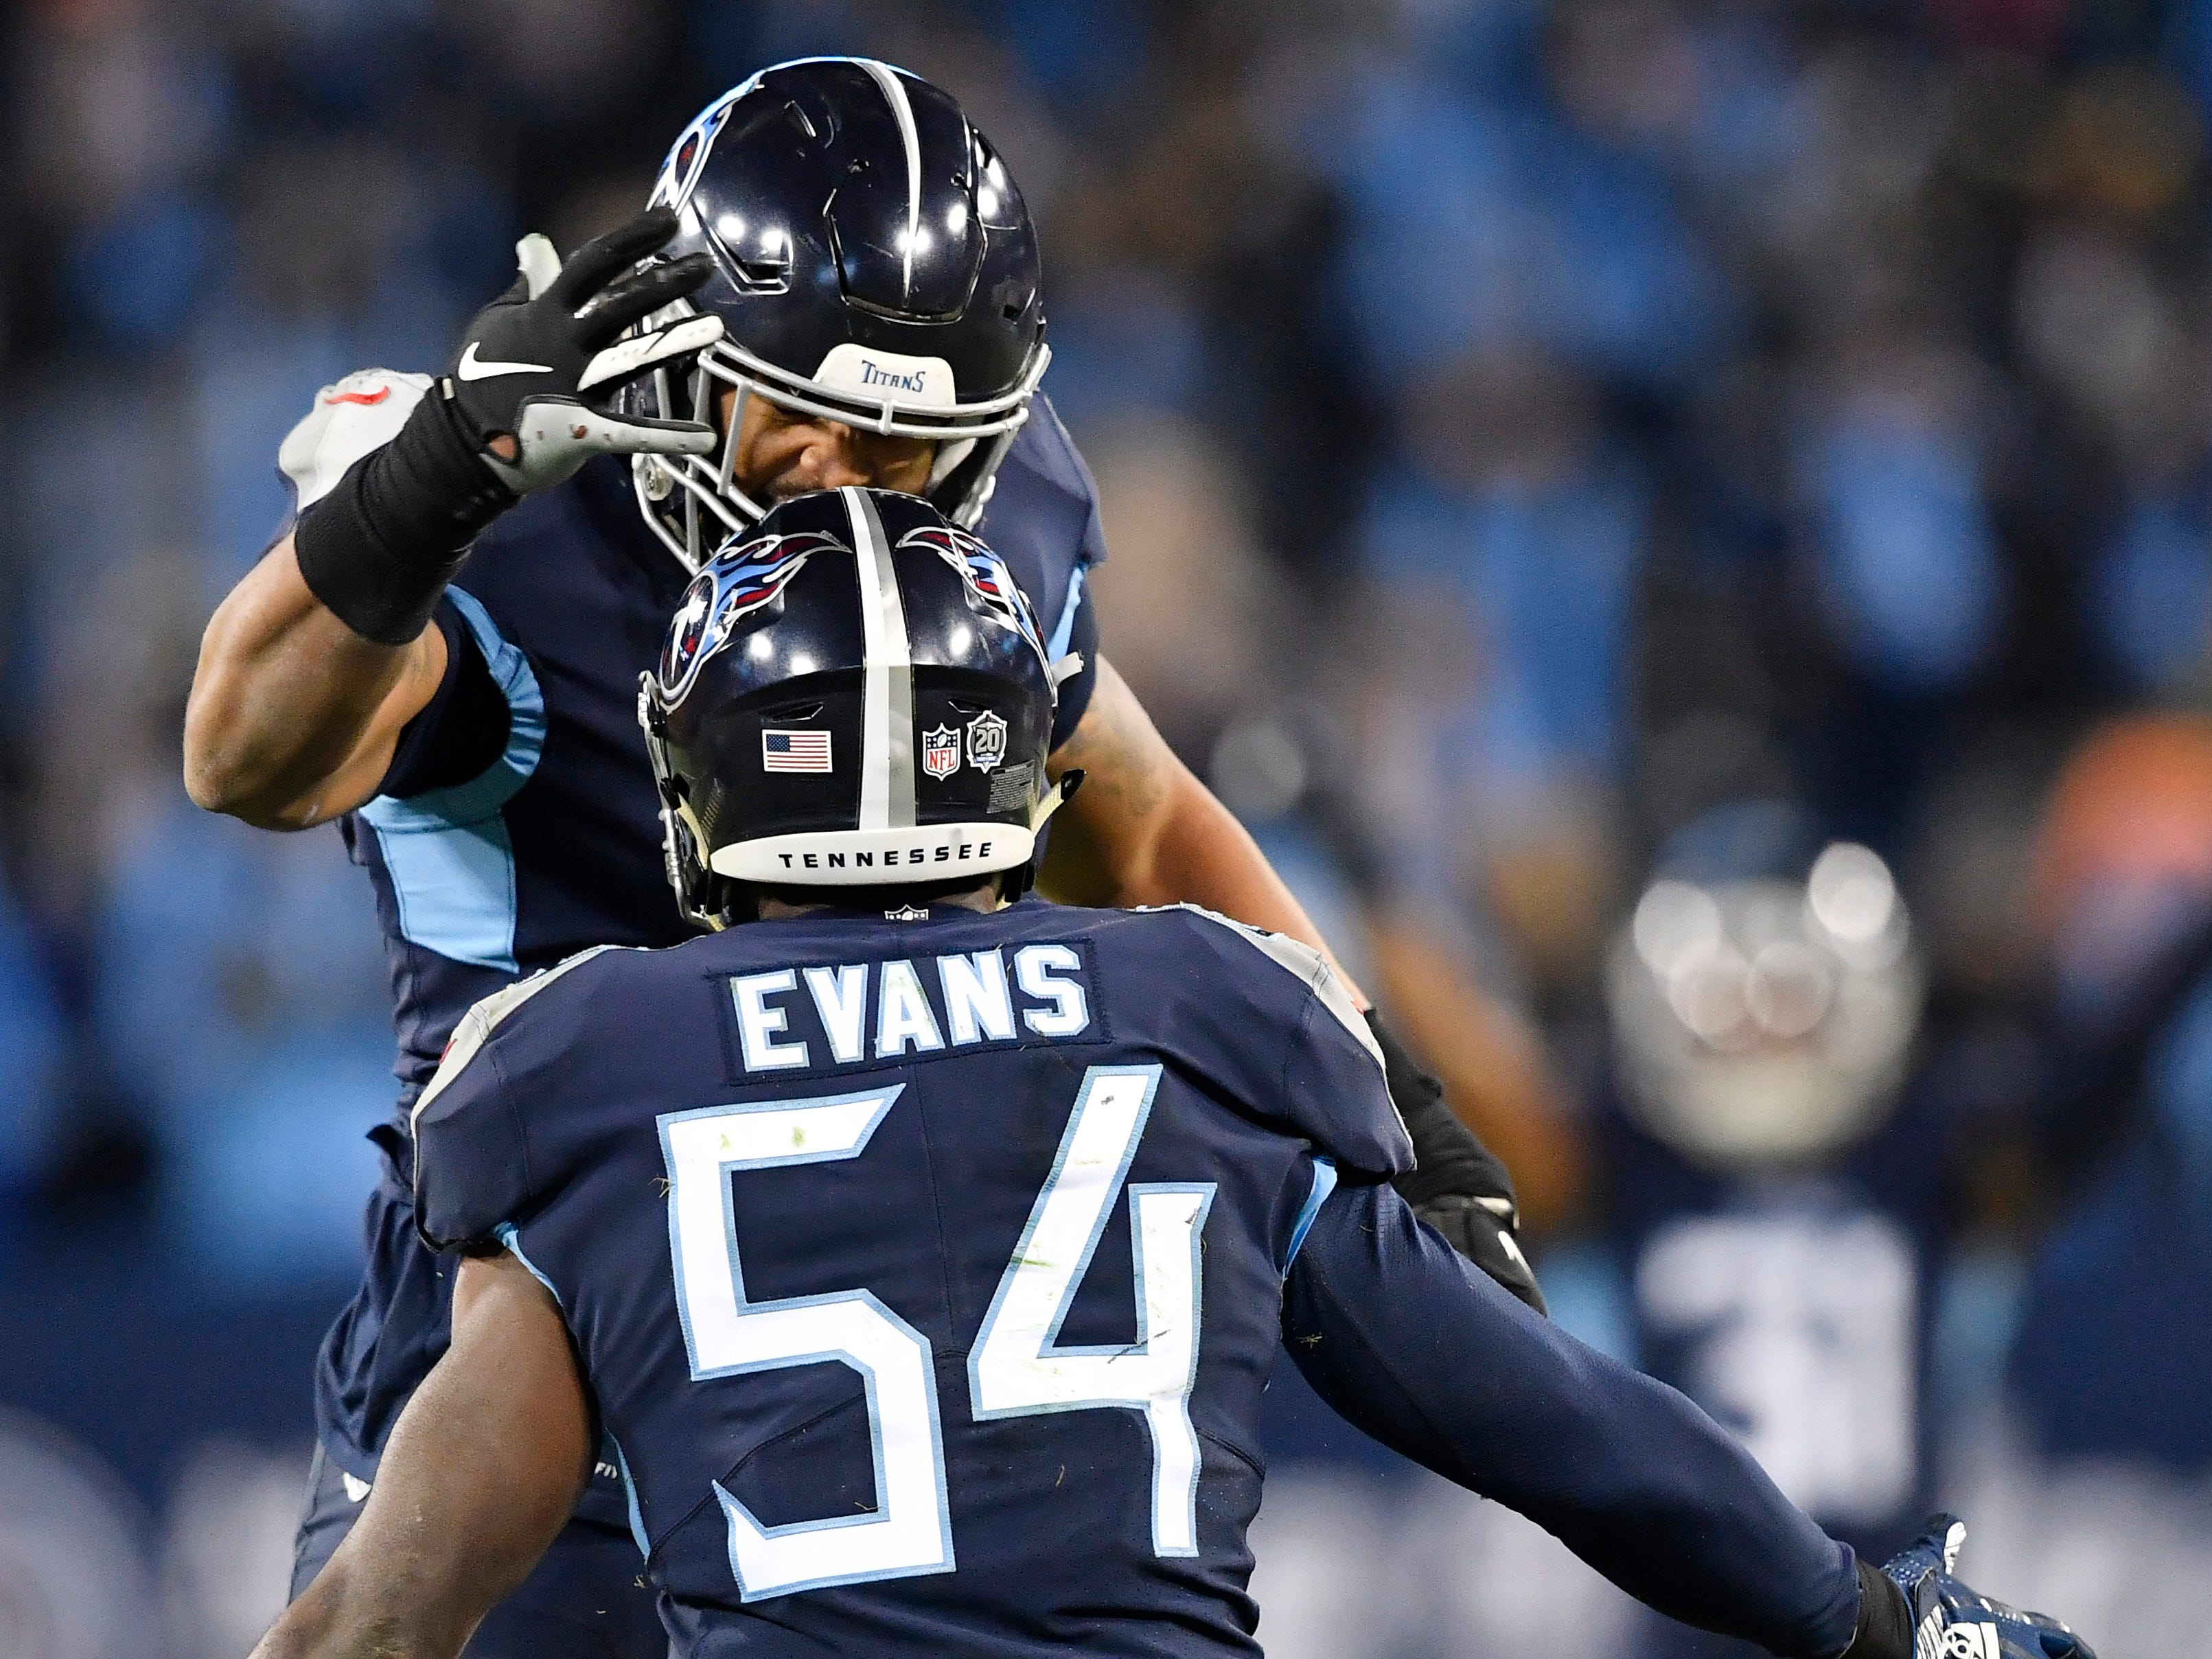 Titans linebackers Derrick Morgan (91) and Rashaan Evans (54) celebrate a play in the fourth quarter at Nissan Stadium Thursday, Dec. 6, 2018, in Nashville, Tenn.